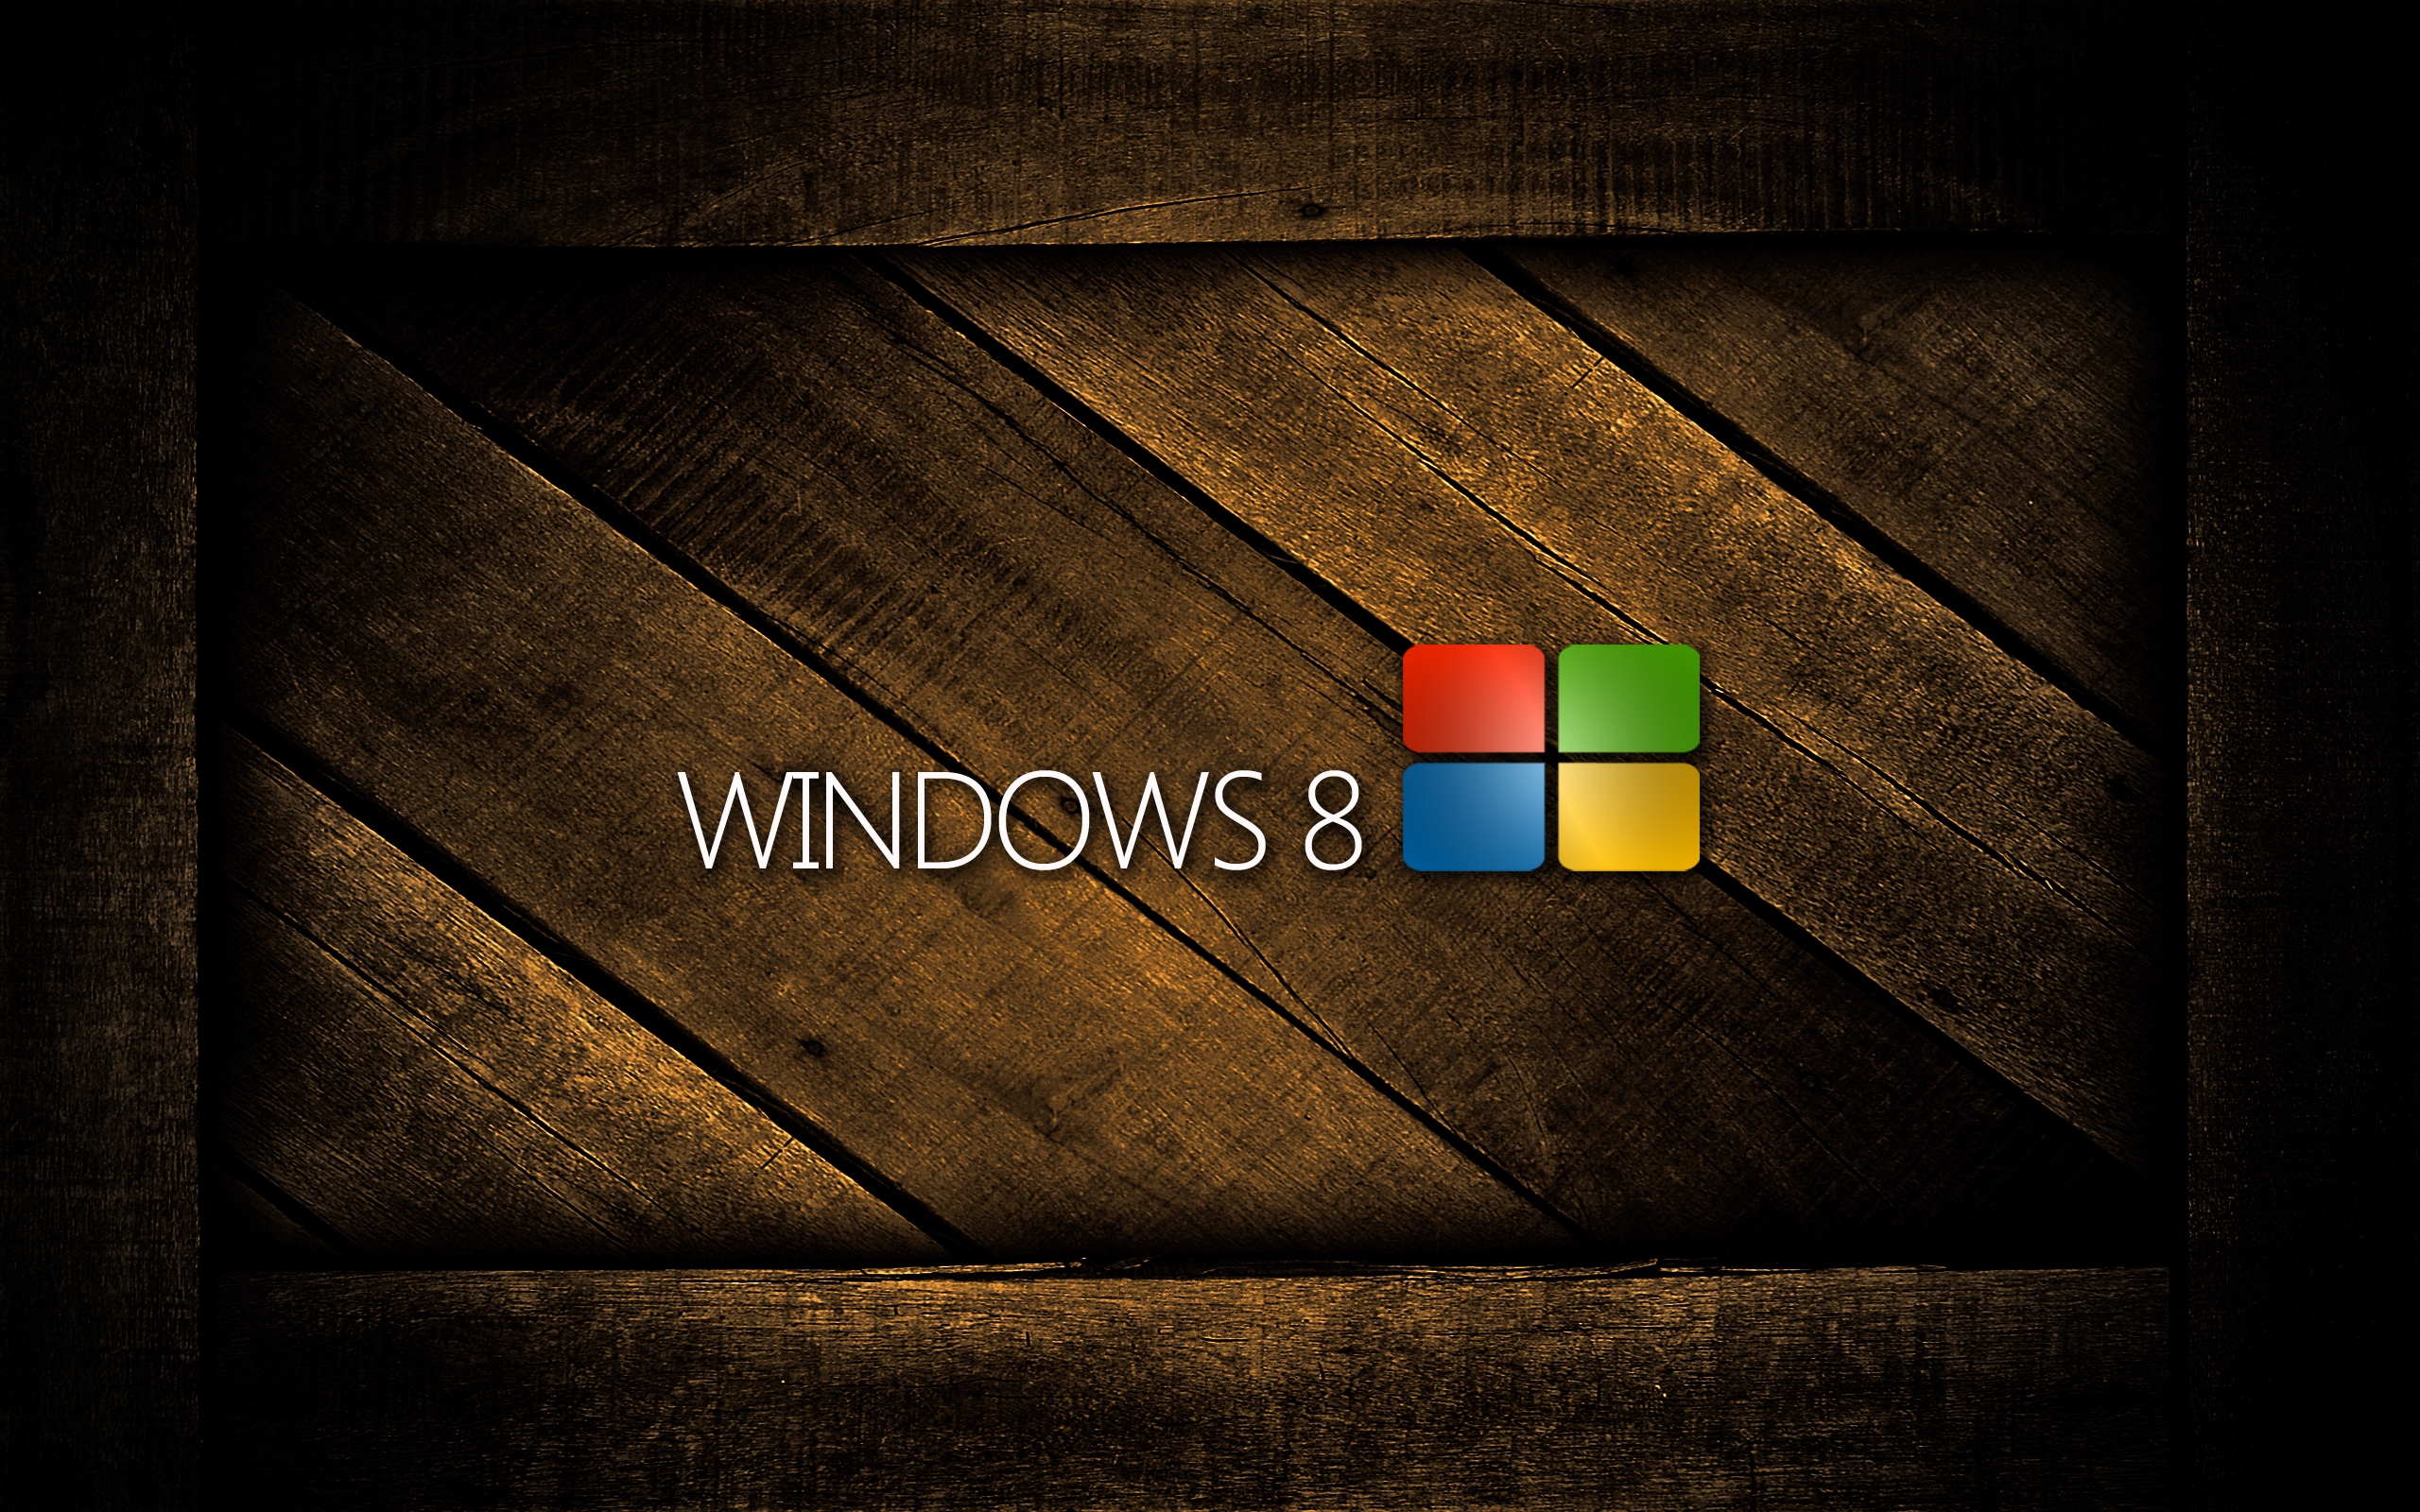 Hd wallpaper pack download - Download Microsoft Windows 8 Wallpapers Pack 4 Wallpapers Techmynd